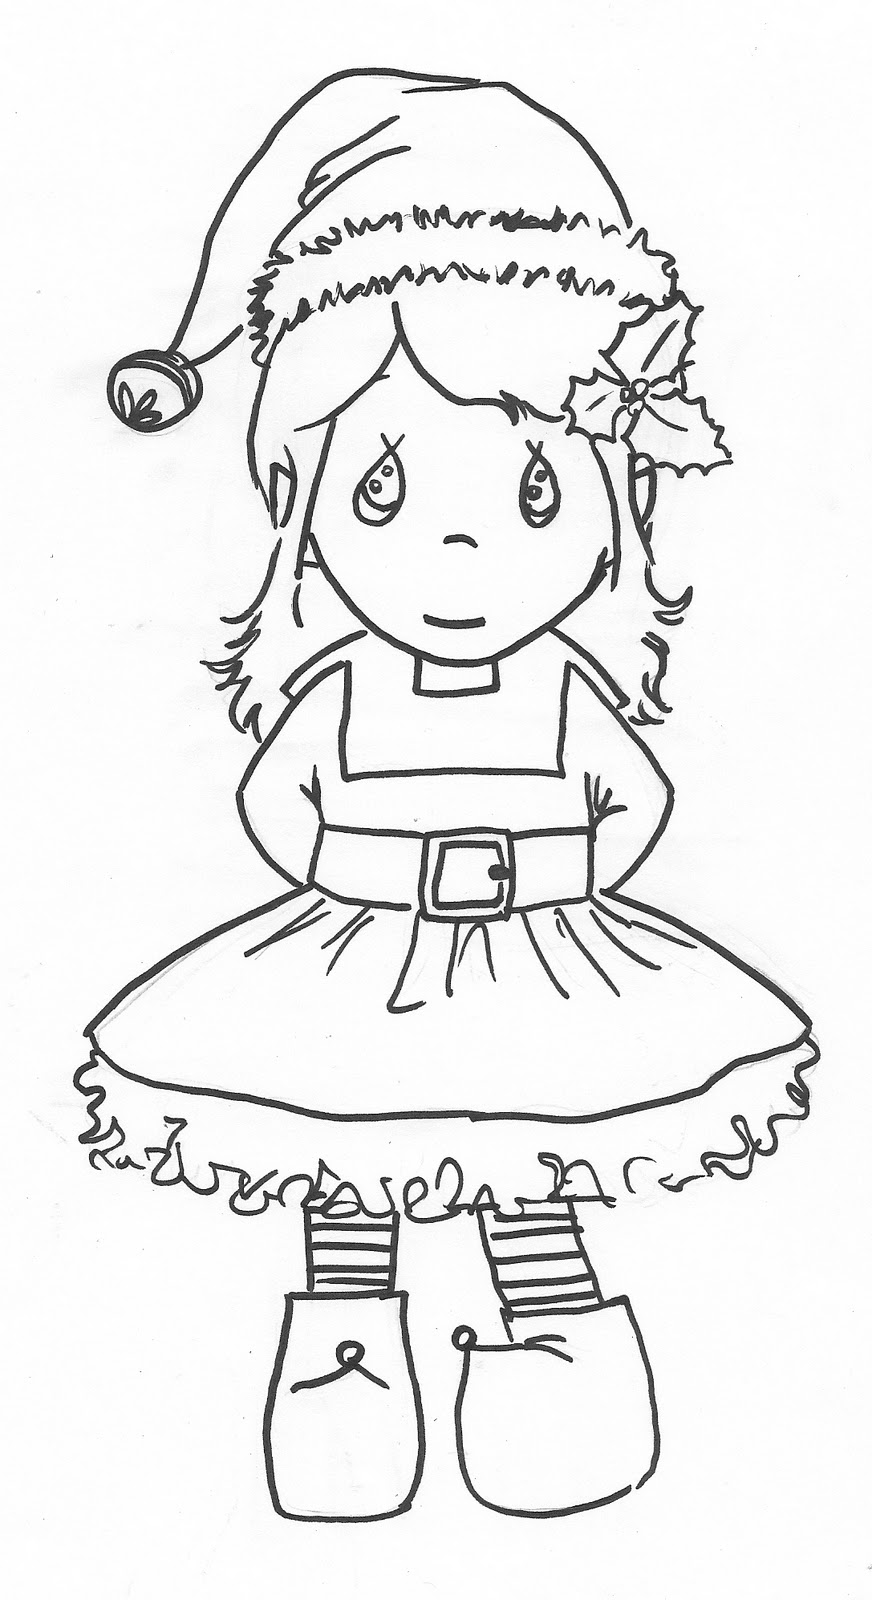 Girl christmas elves coloring page - a-k-b.info